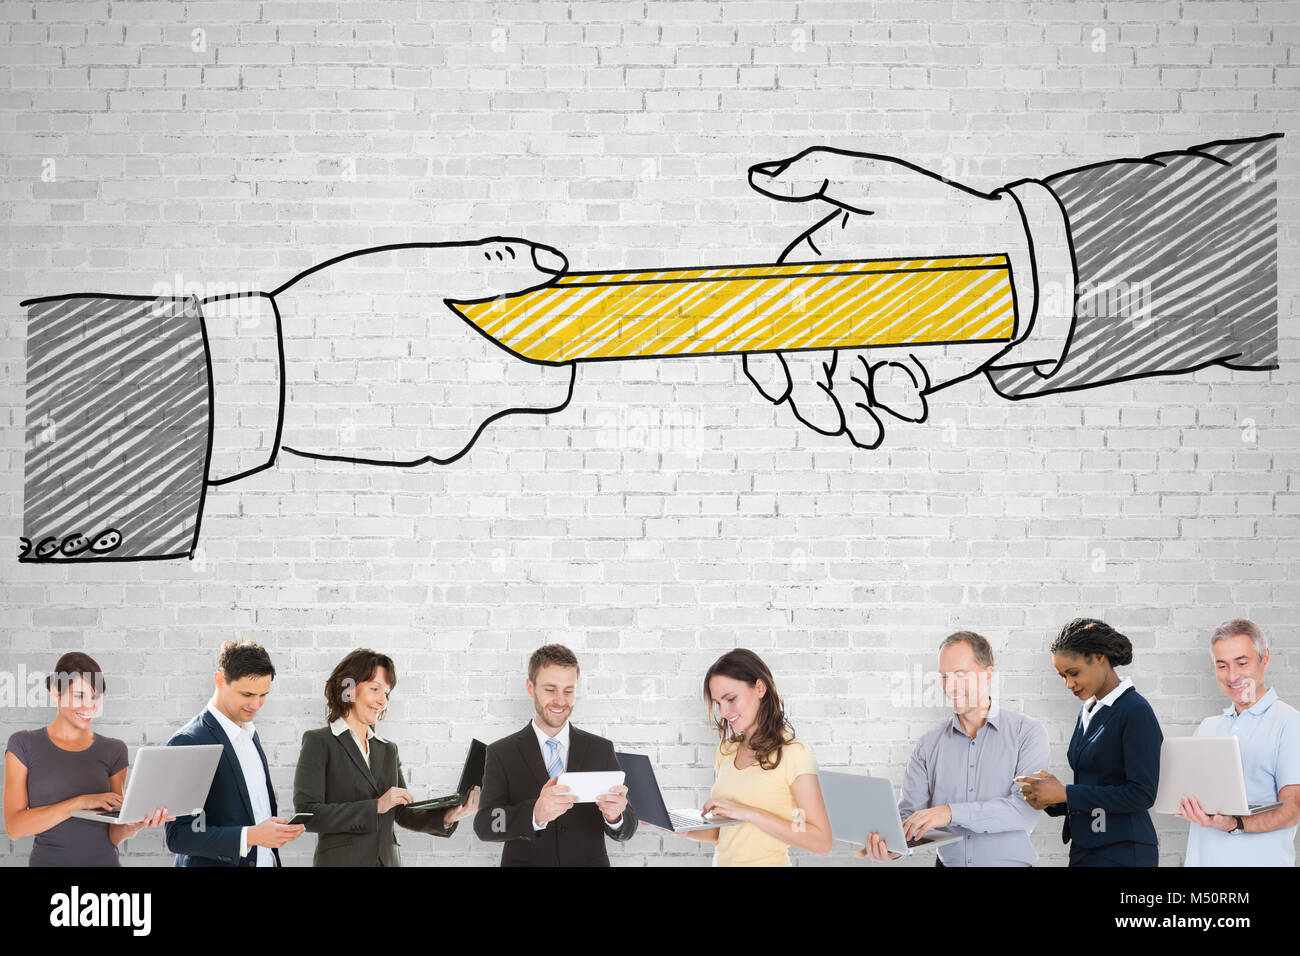 Group Of People Standing On Front Of Passing Relay Baton Concept Image - Stock Image